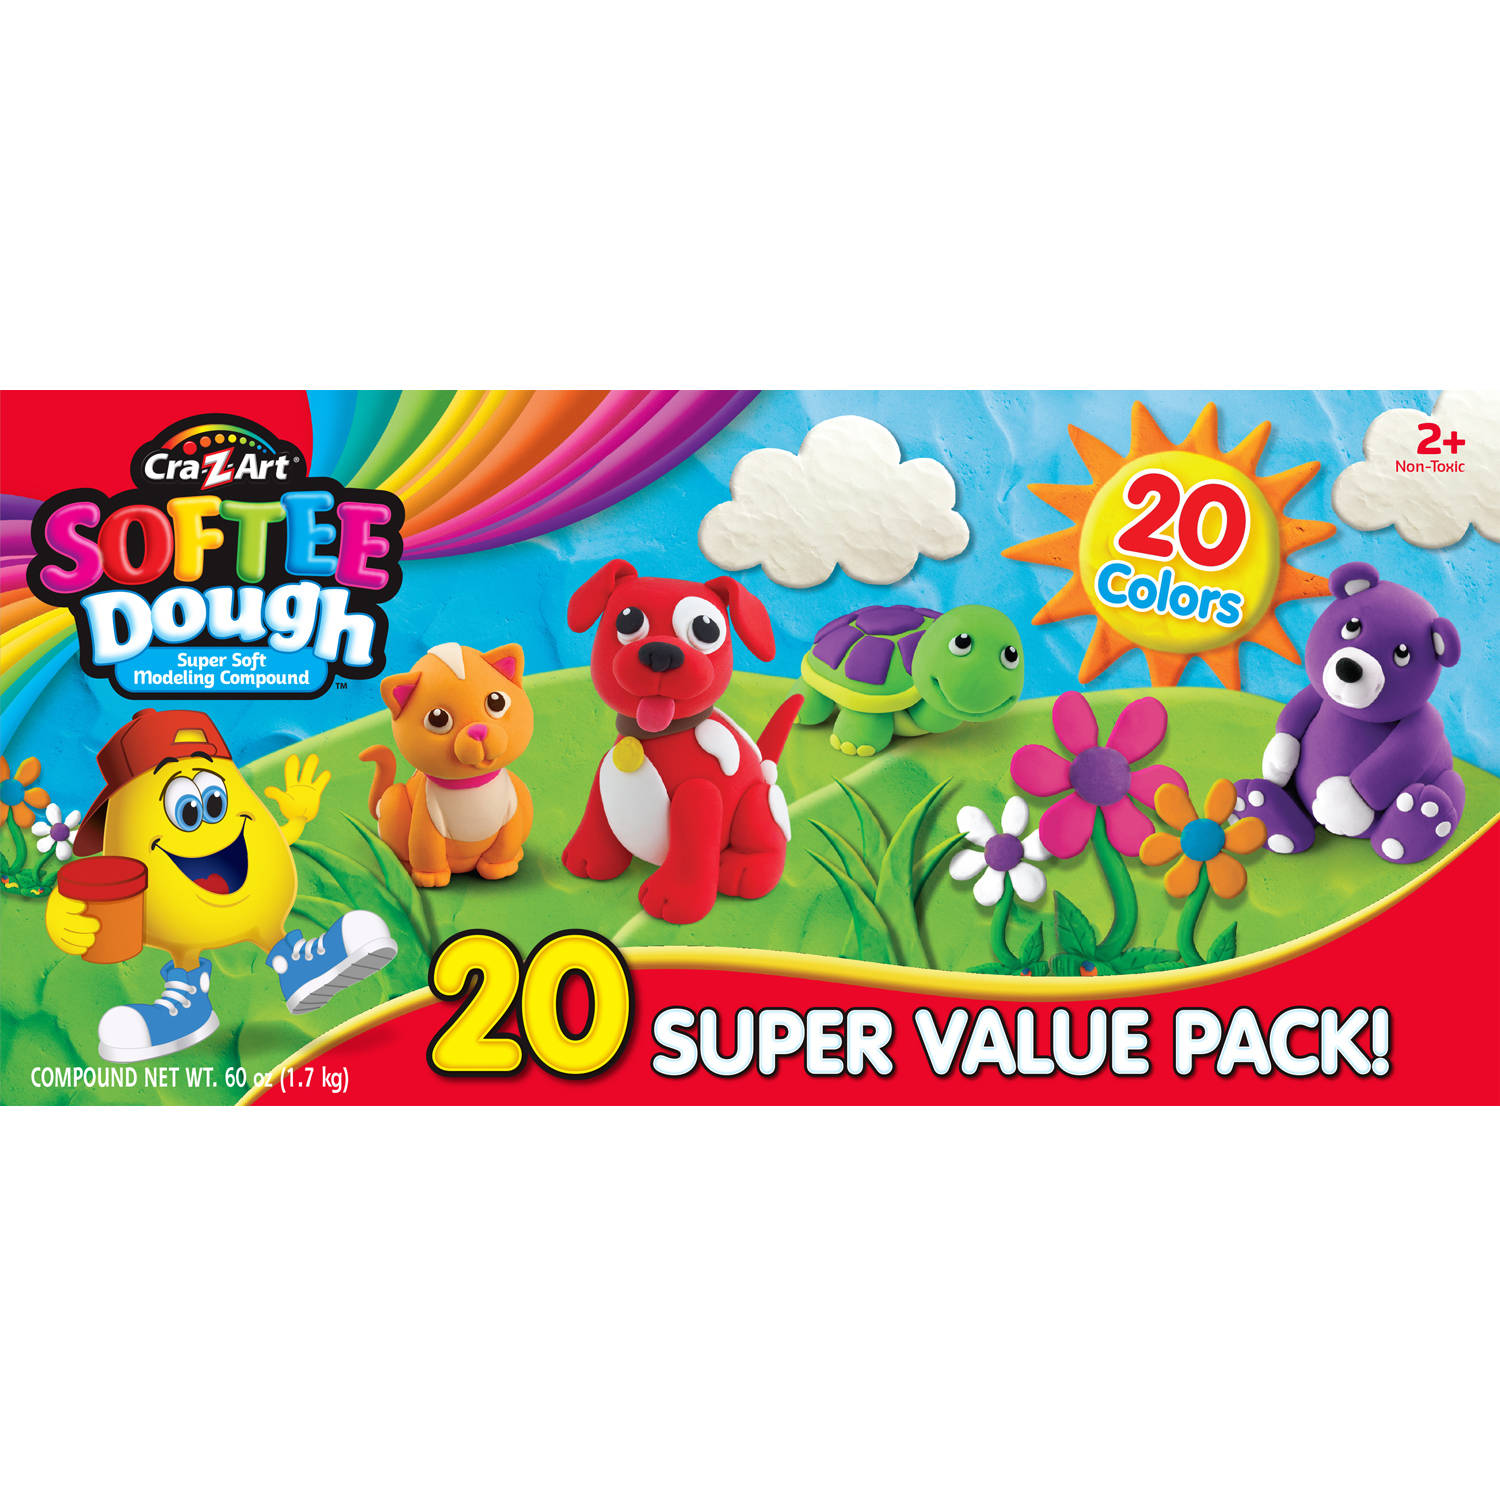 Cra-Z-Art Softee Dough - 20 Pack